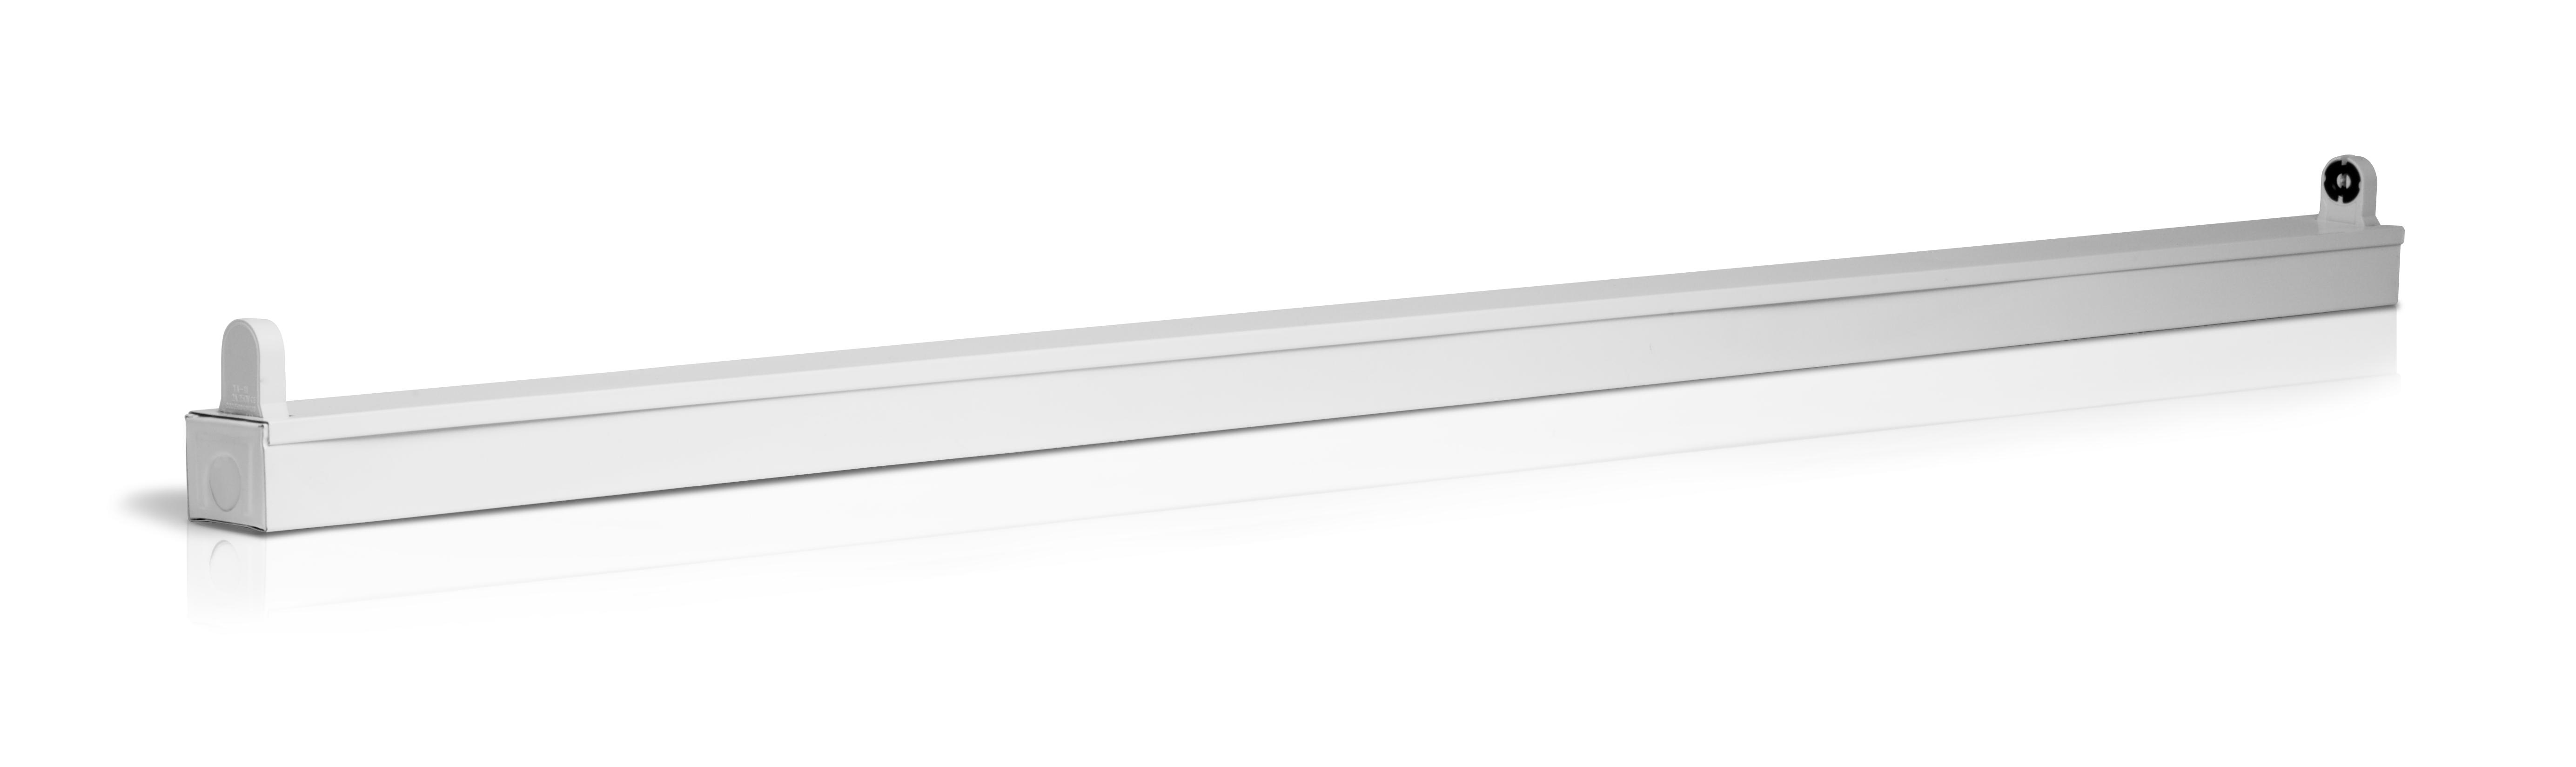 LED Tube Frames